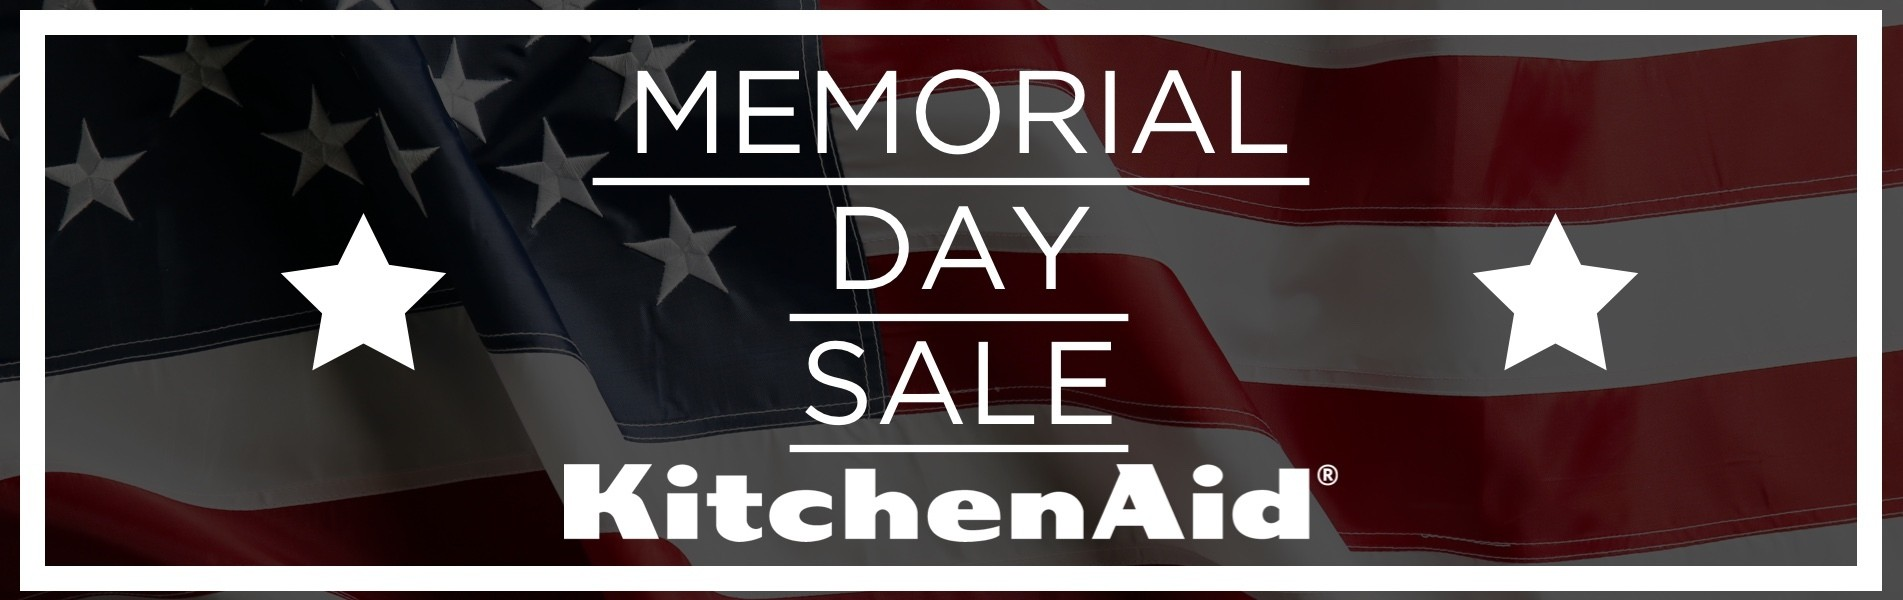 KitchenAid-Memorial-Day-2021